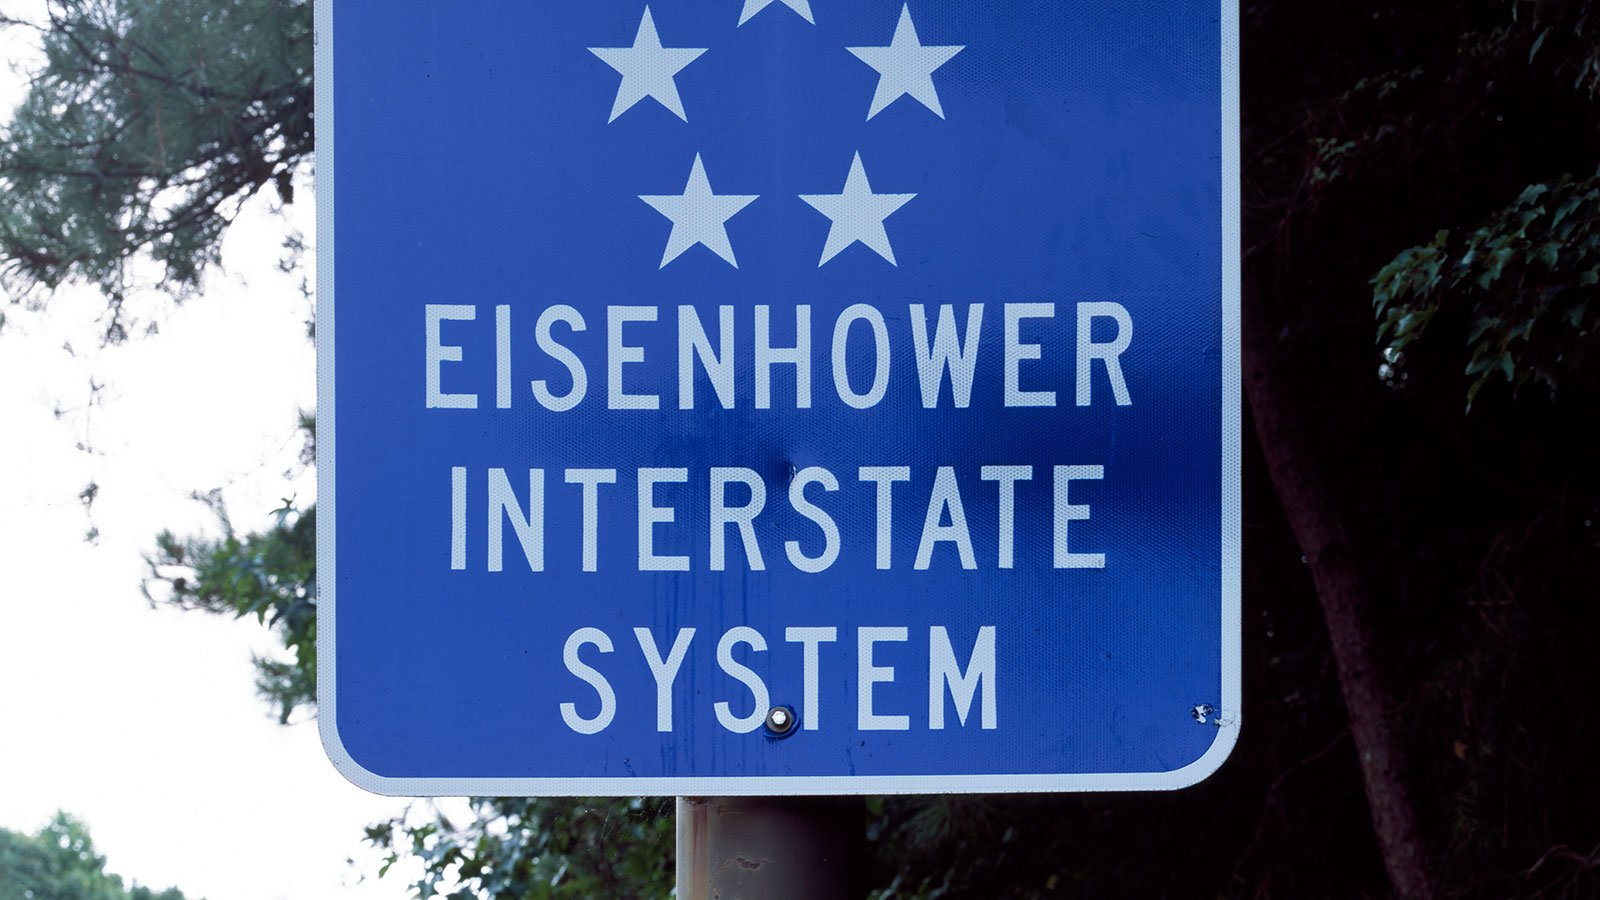 ign for the Interstate Highway System saluting President Dwight Eisenhower